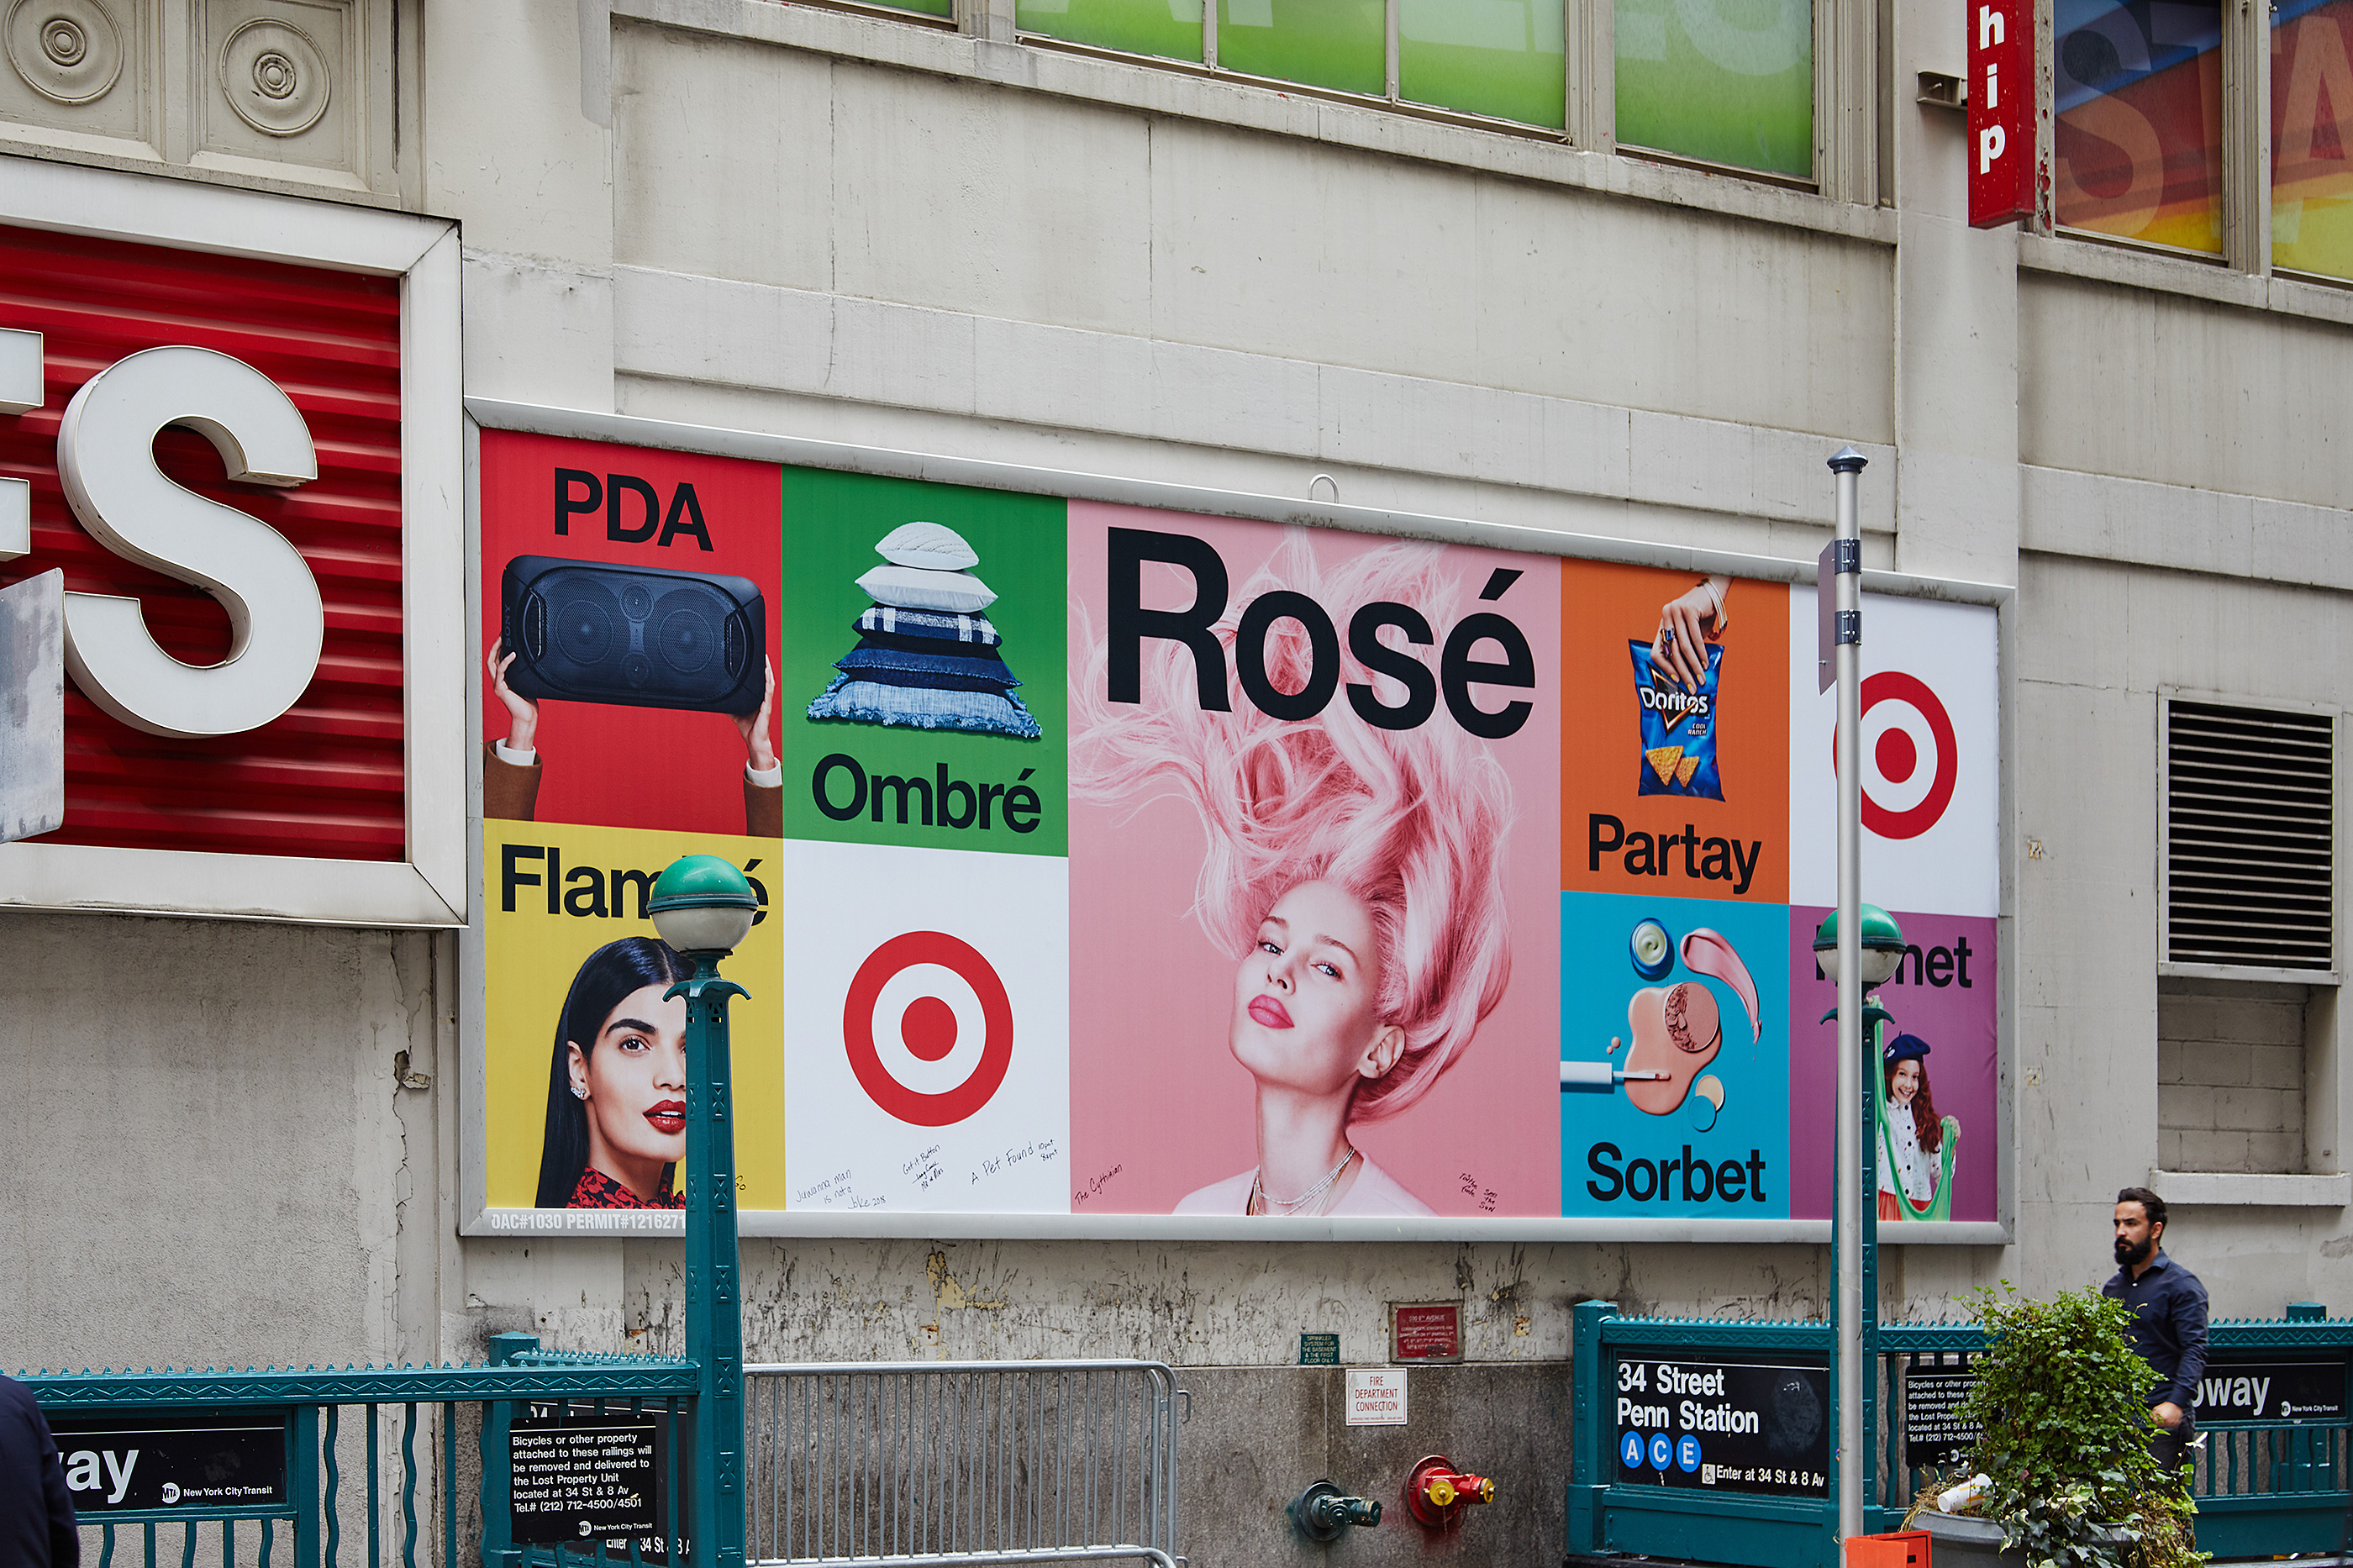 Matthijs Matt van Leeuwen, Mother New York, Target, Identity Campaign Design